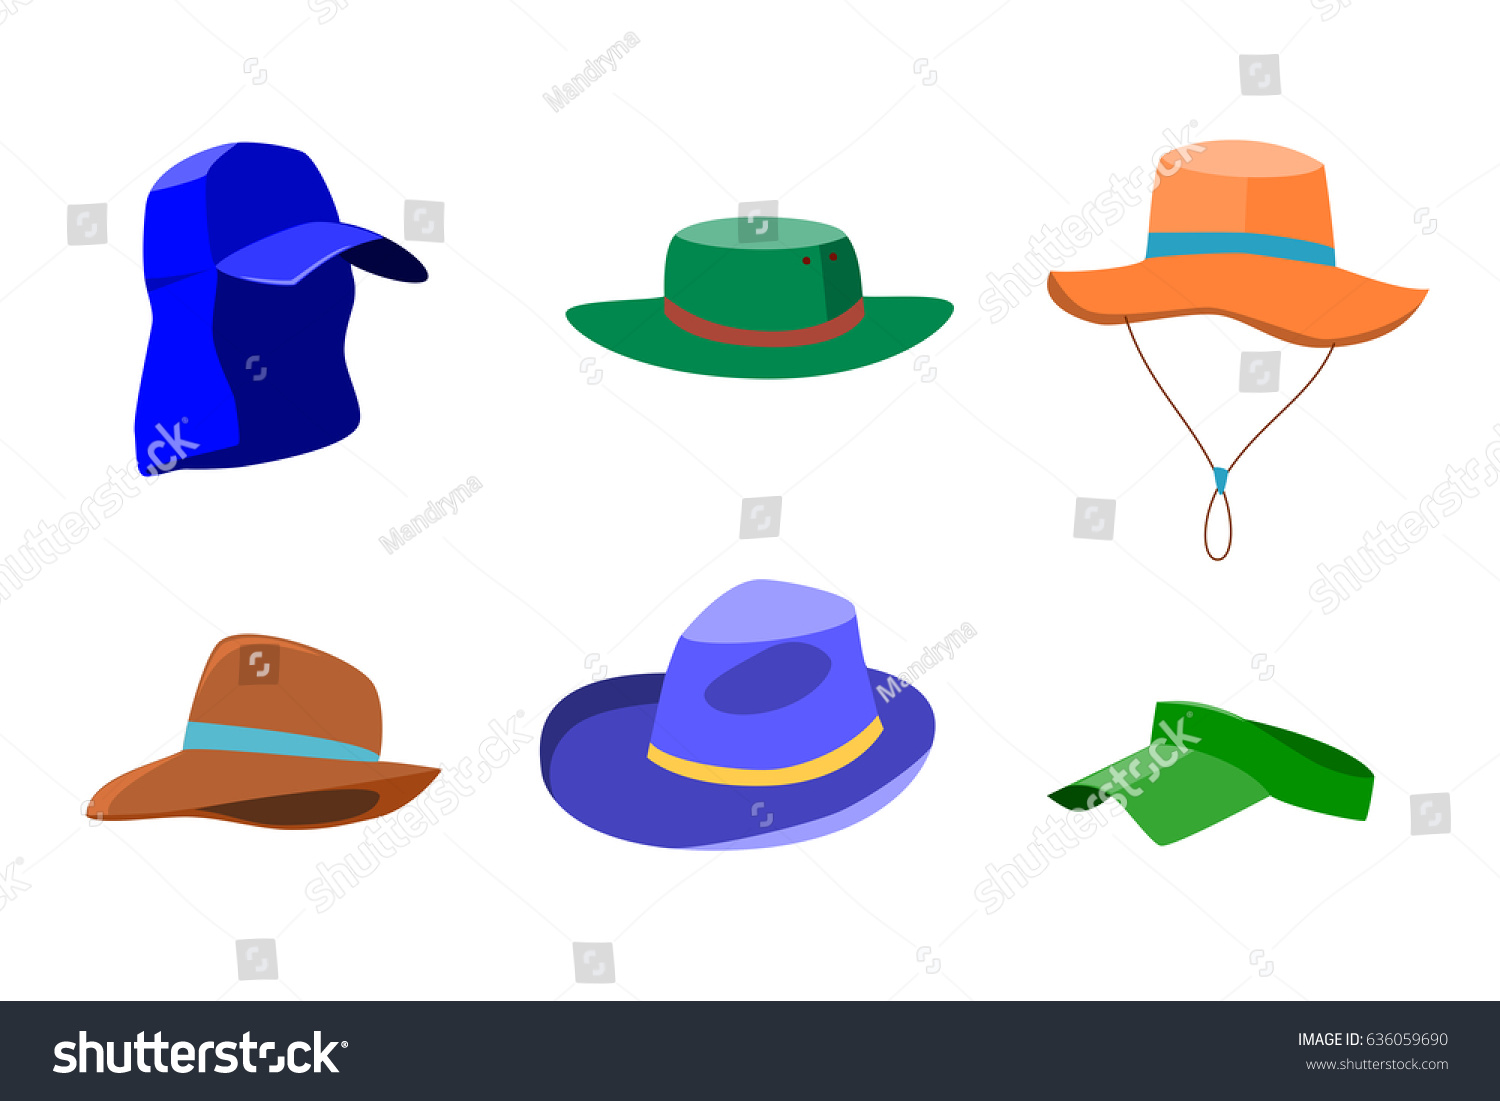 c4d3481cbcce2 Set of summer hats for men and women isolated on white background. Flat  style icons